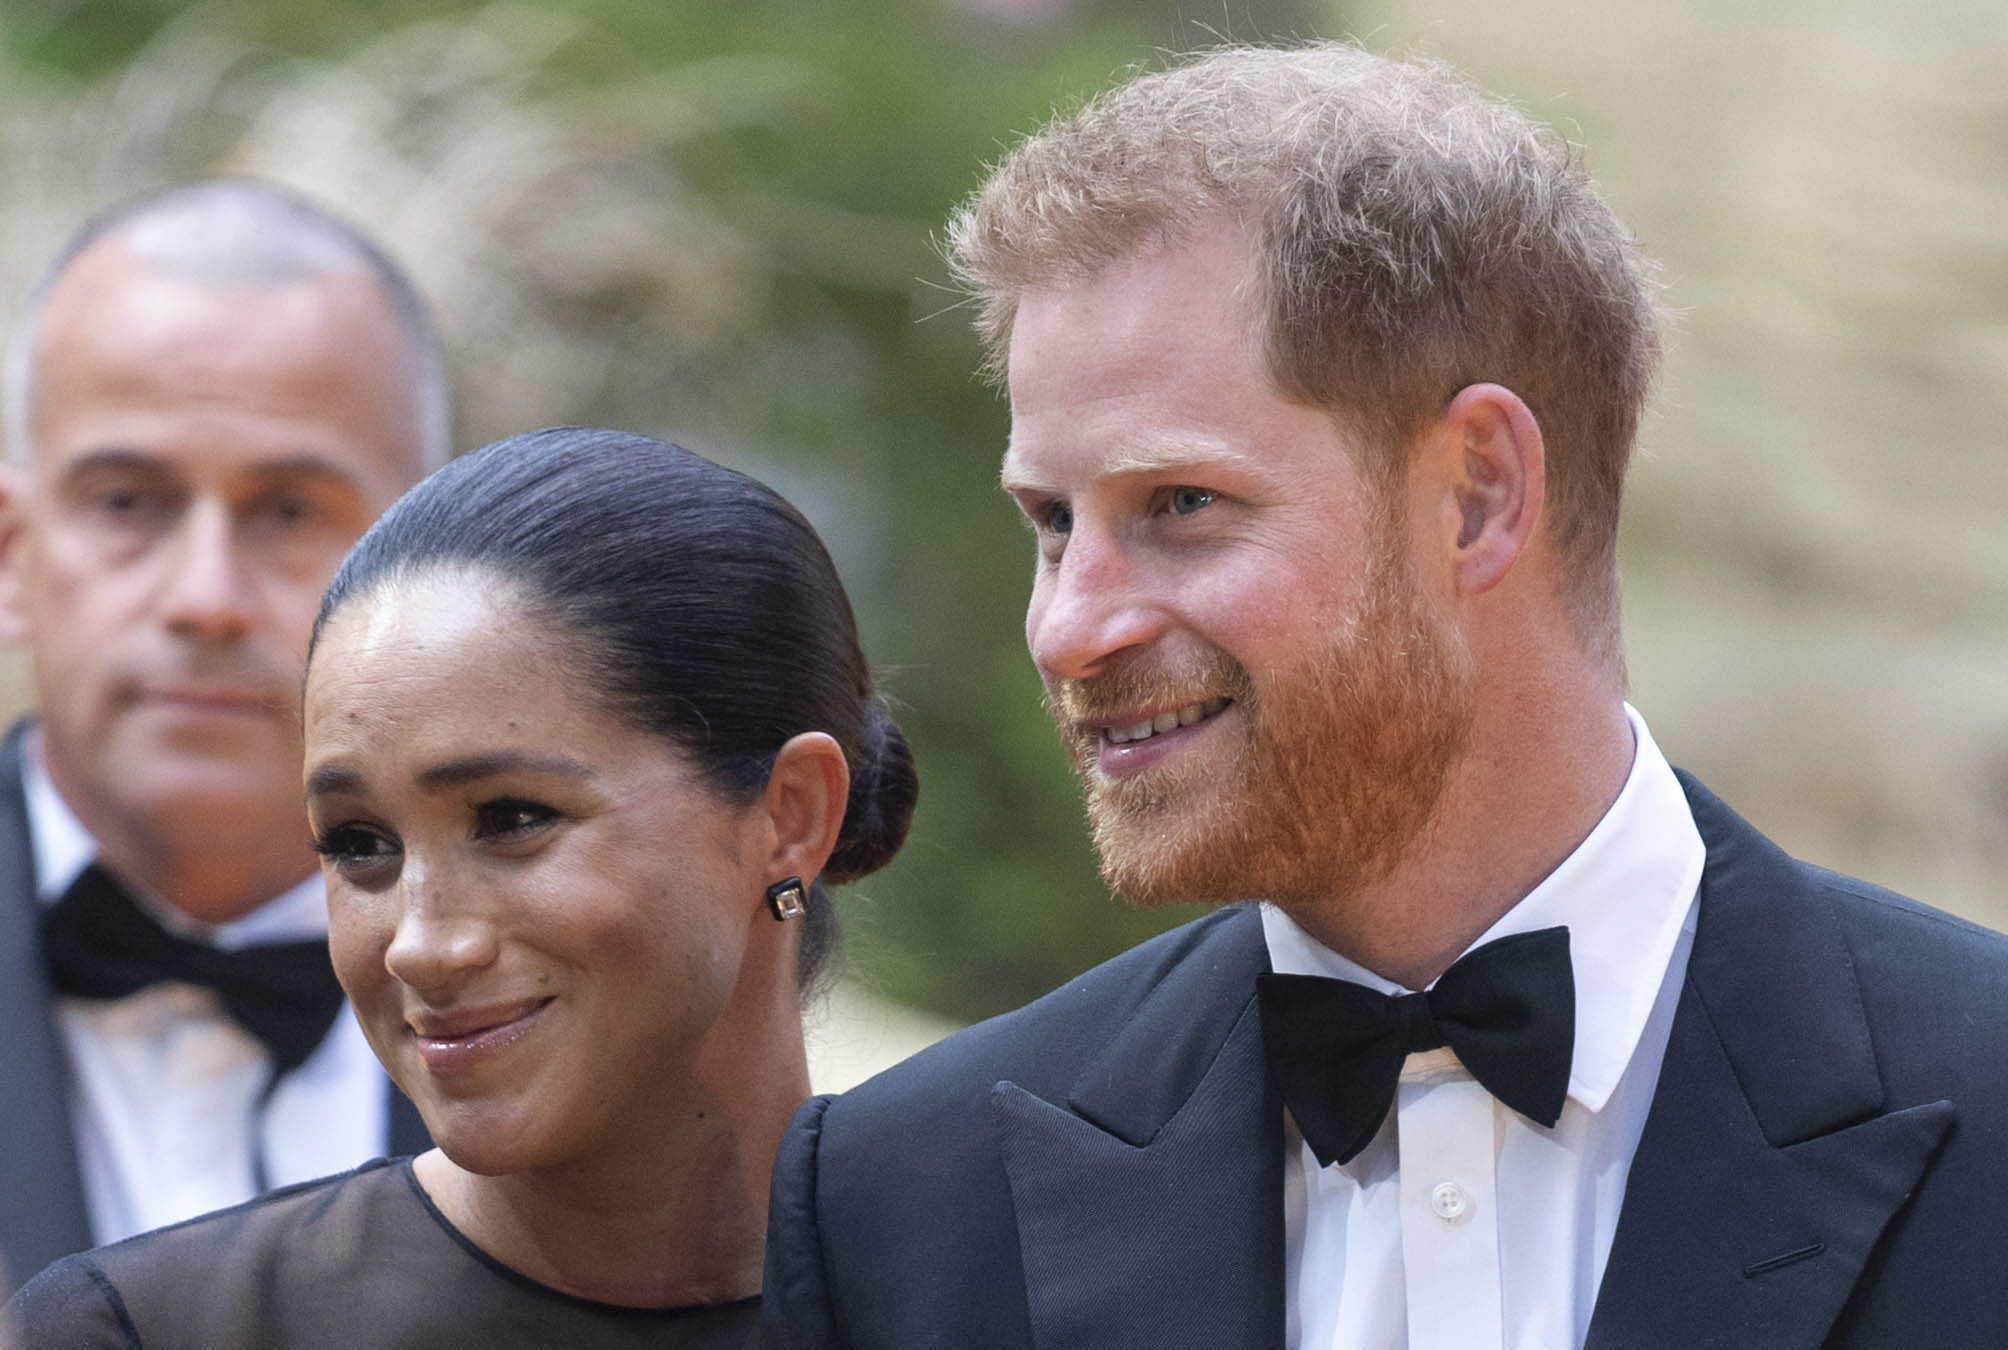 """January 20th 2020 - Buckingham Palace has announced that Prince Harry and Duchess Meghan will no longer use """"royal highness"""" titles and will not receive public money for their royal duties. Additionally, as part of the terms of surrendering their royal responsibilities, Harry and Meghan will repay the $3.1 million cost of taxpayers' money that was spent renovating Frogmore Cottage - their home near Windsor Castle. - January 9th 2020 - Prince Harry The Duke of Sussex and Duchess Meghan of Sussex intend to step back their duties and responsibilities as senior members of the British Royal Family. - File Photo by: zz/KGC-178/STAR MAX/IPx 2019 7/14/19 Prince Harry and Duchess Meghan at the premiere of """"The Lion King"""" in London, England, UK."""